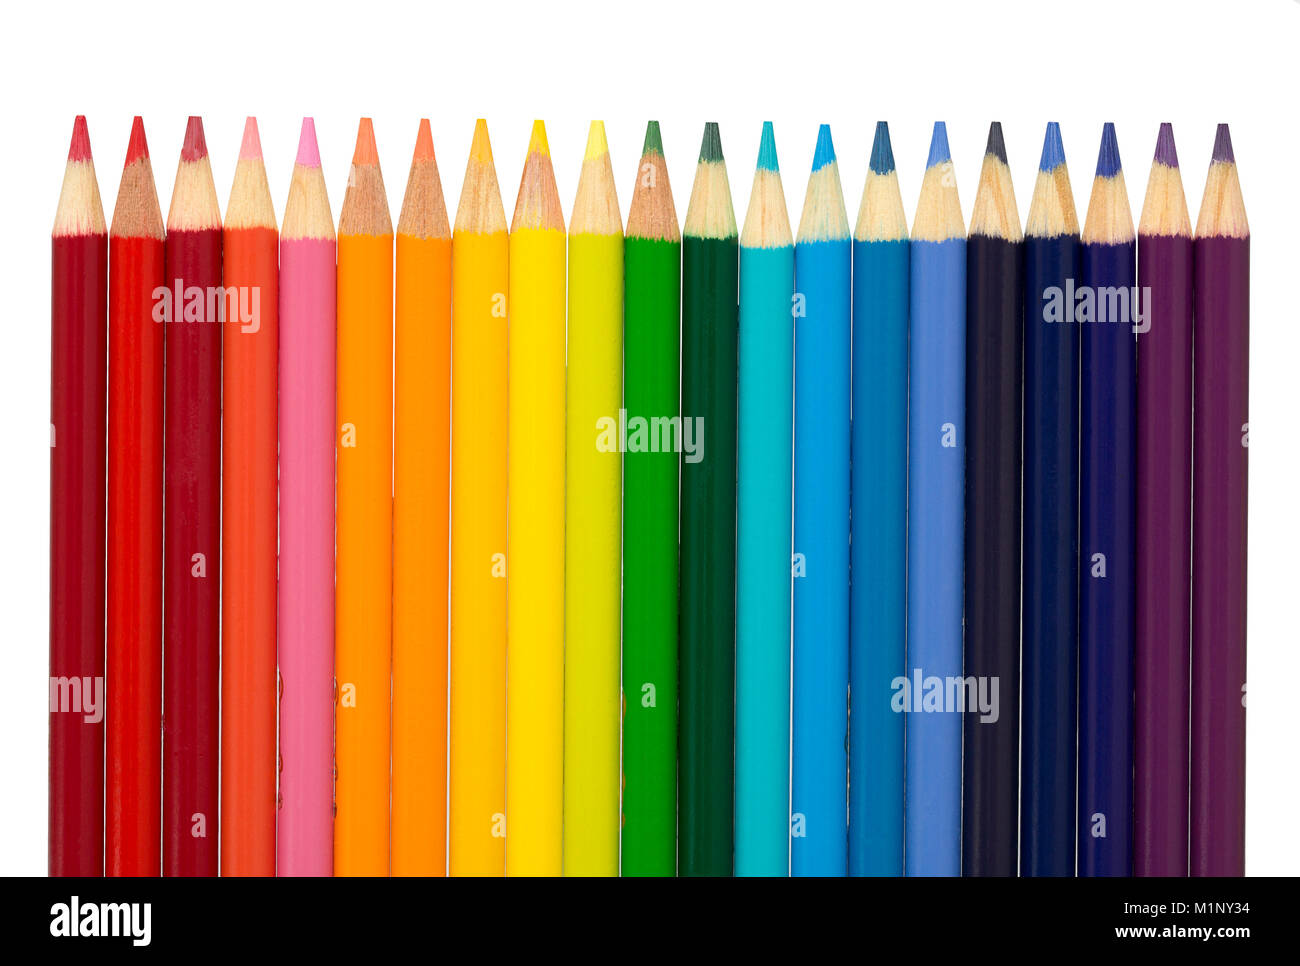 A group of color pencils arranged in the color scheme of a rainbow- red, orange, yellow, green, blue indigo, and - Stock Image